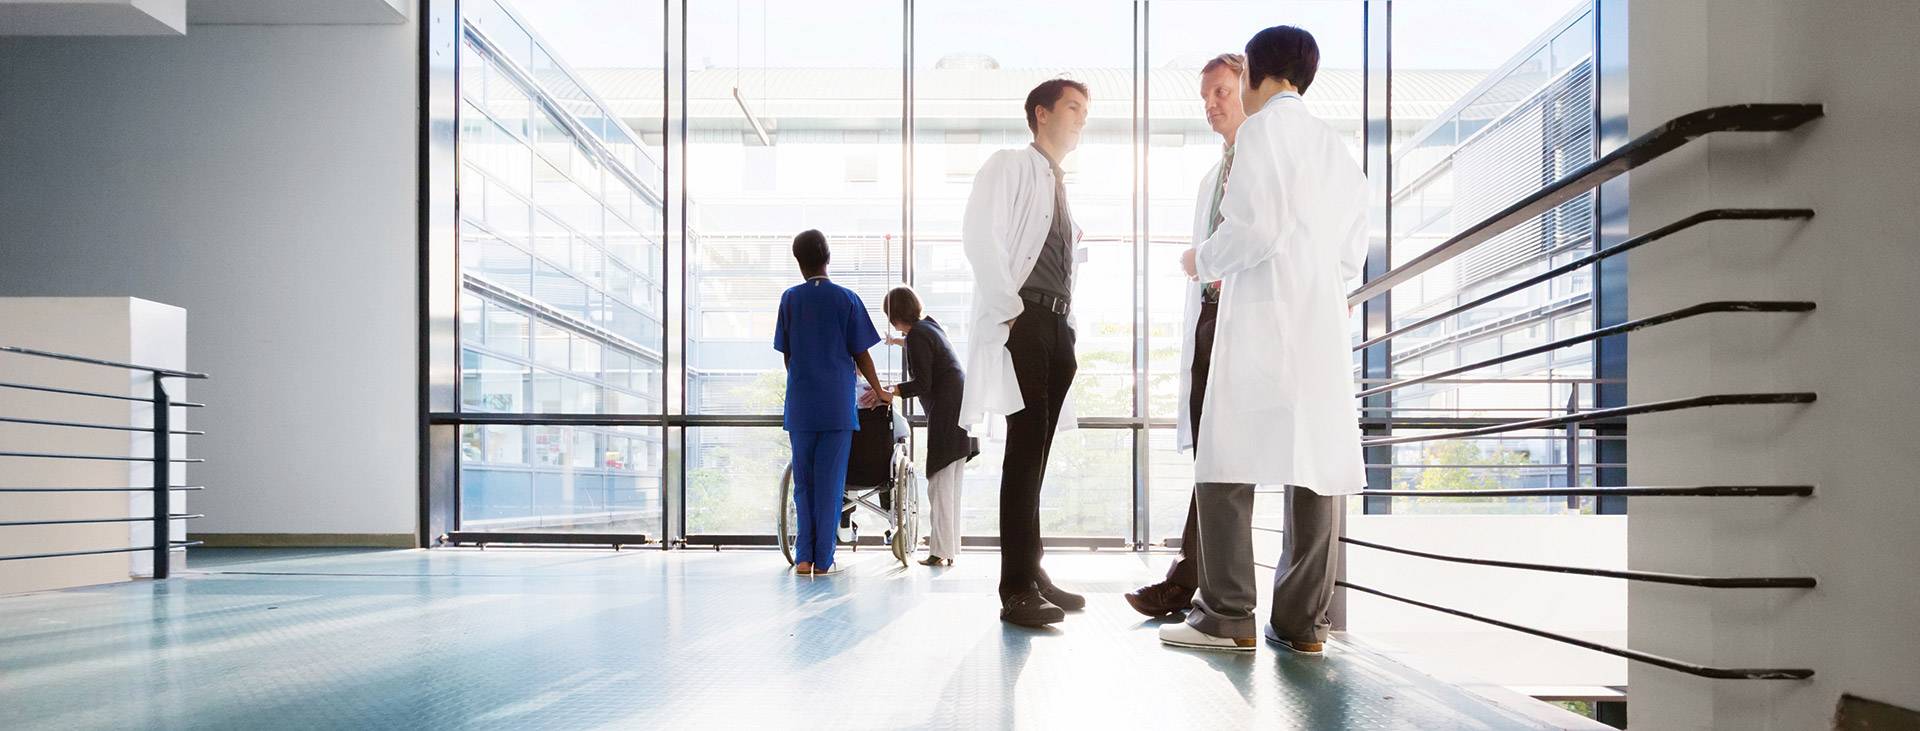 Hospital and Facility Services